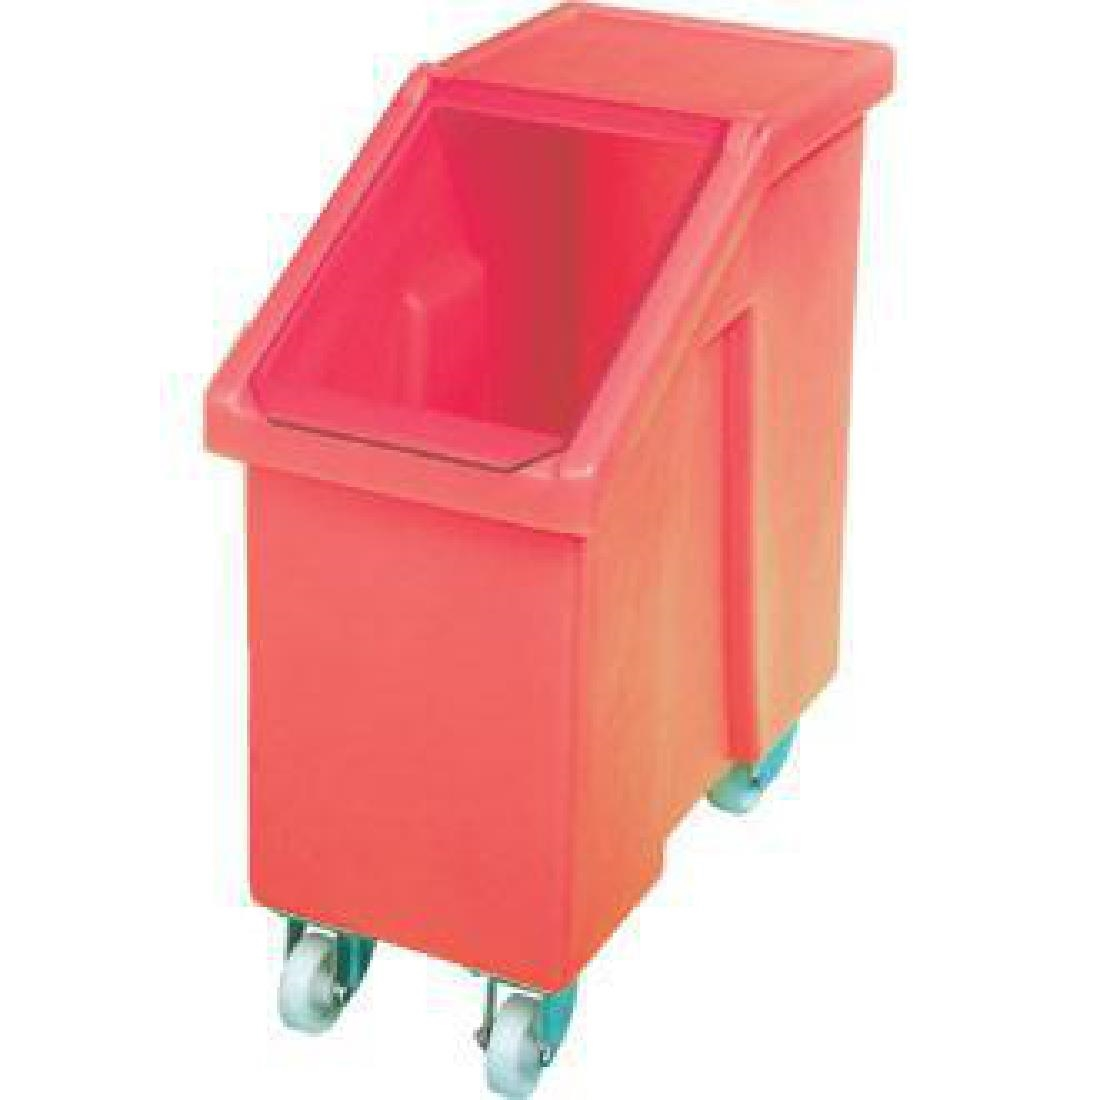 Image of Mobileingredient Bin 65Ltr Red